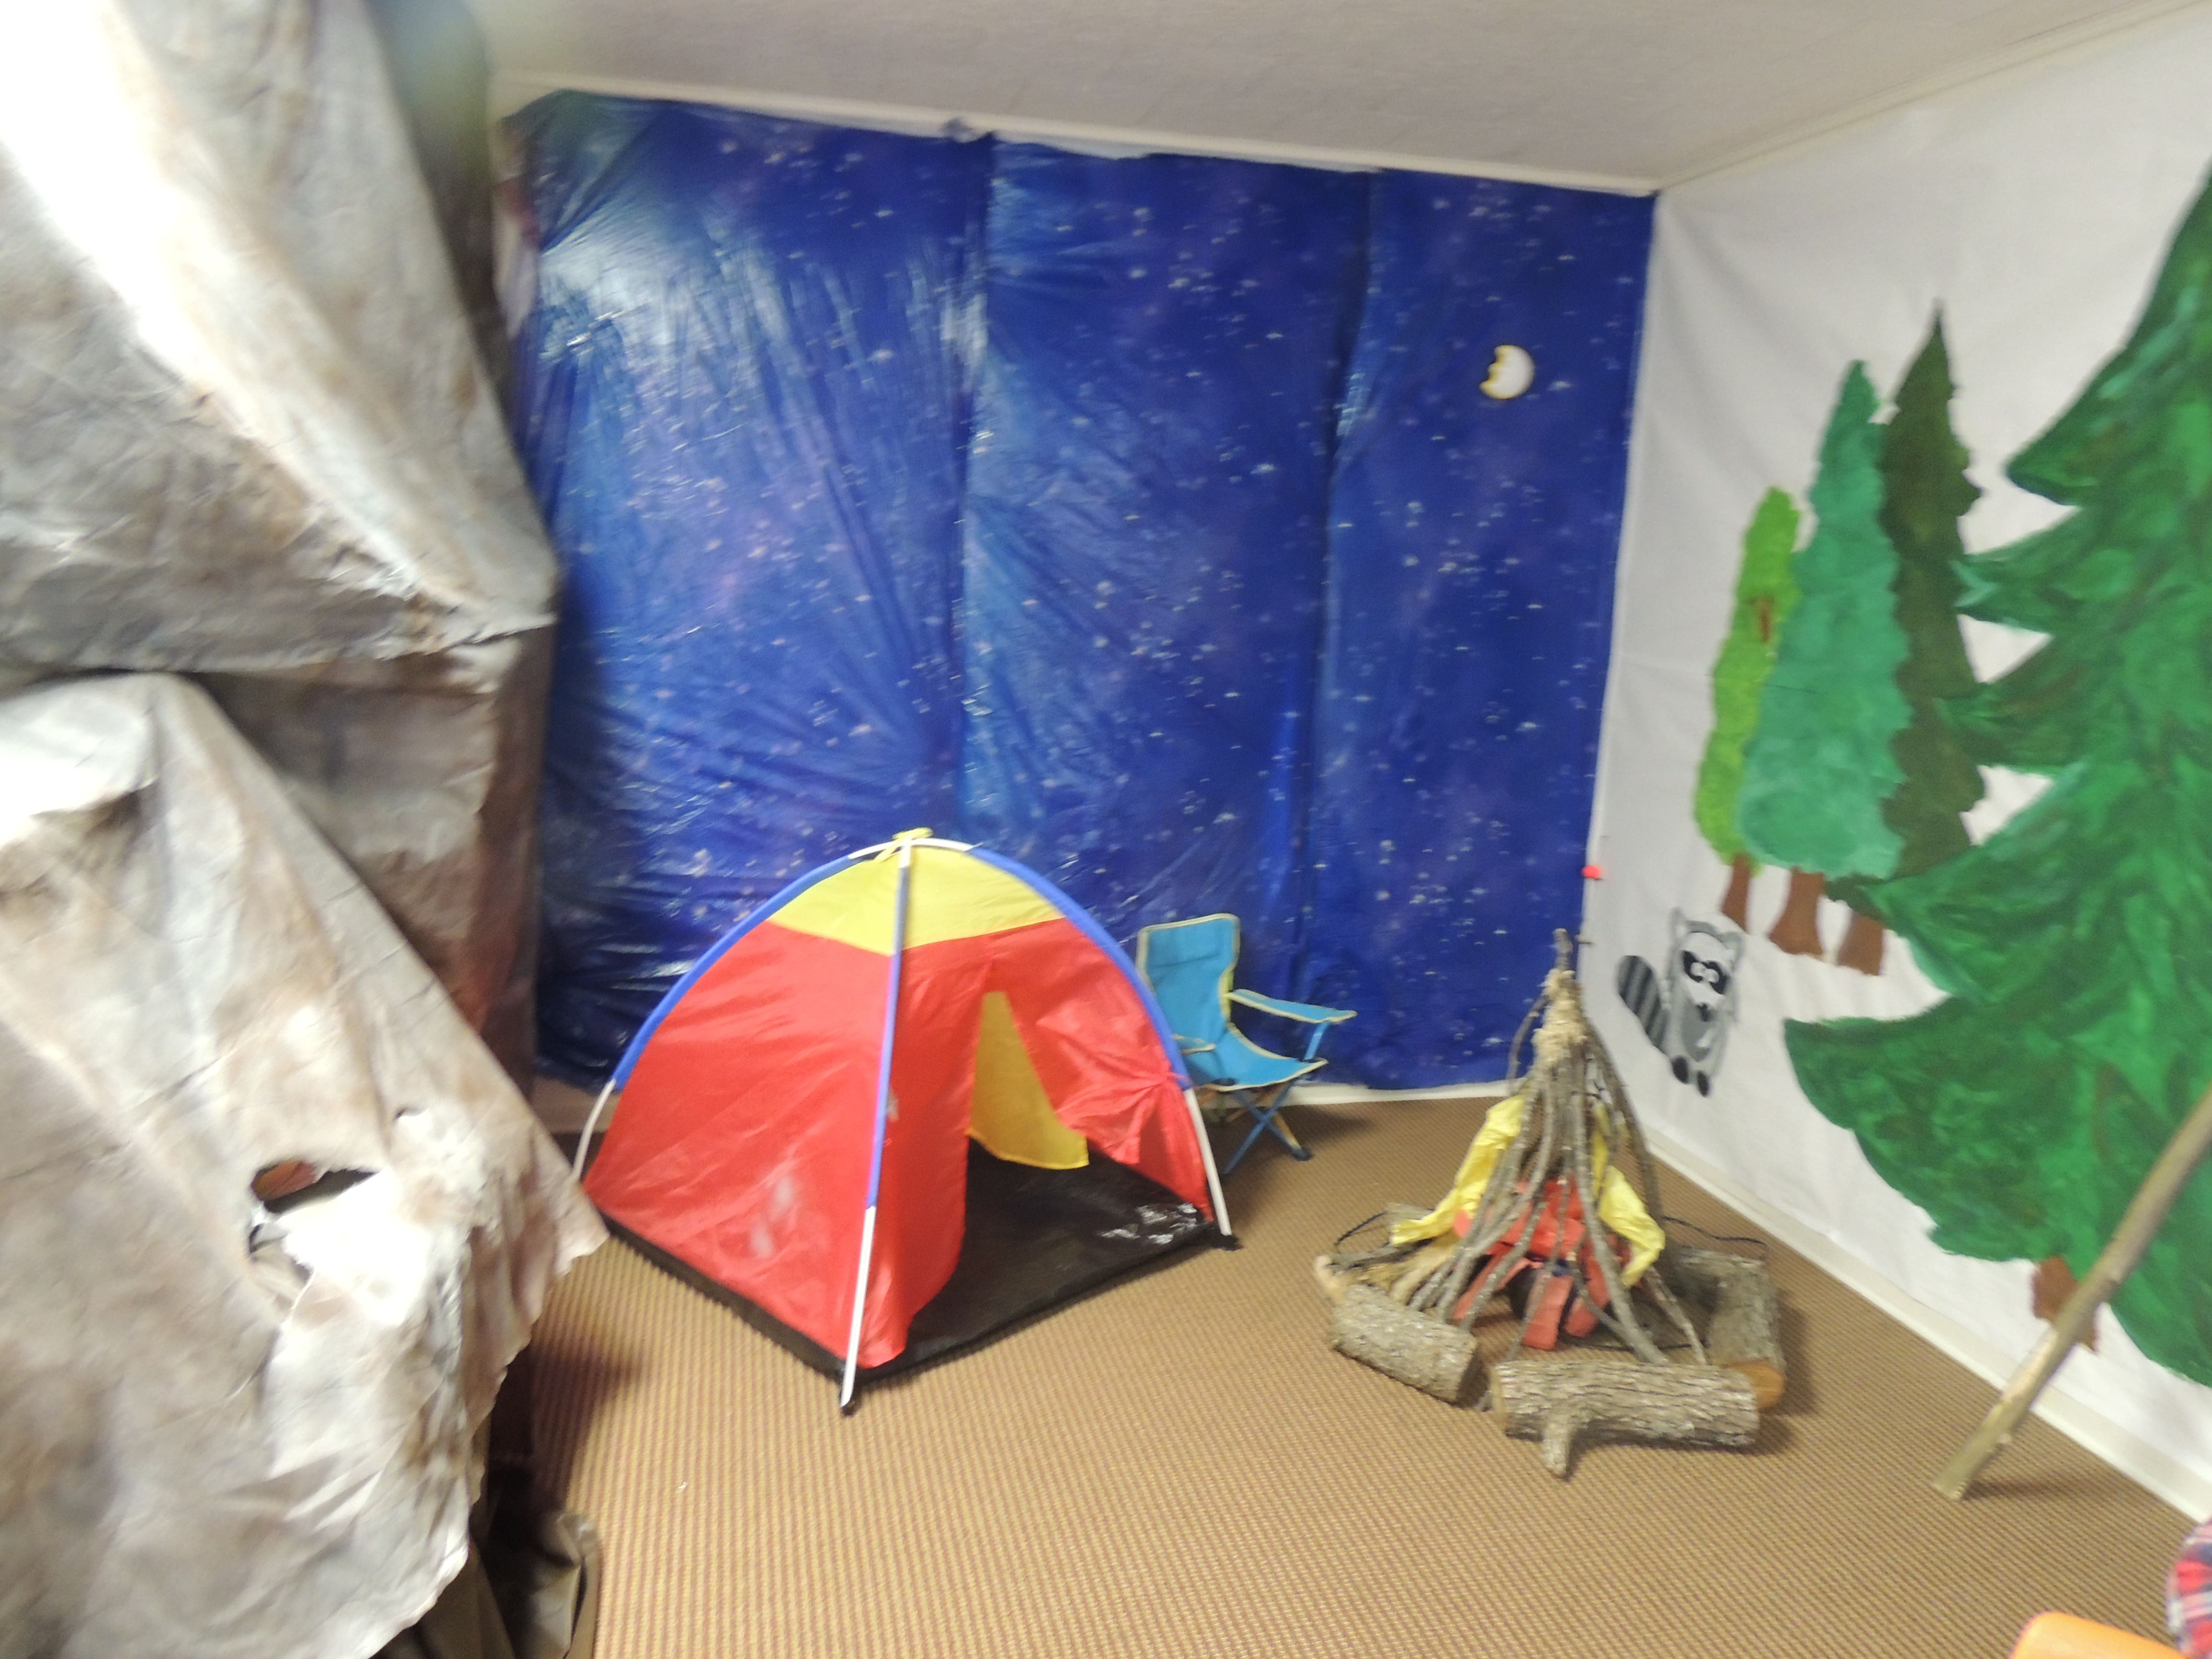 Vbs Camping Theme Decorating Ideas Part - 19: VBS SonRise Decoration FBC 2013 Mountain And Night Camping Scene